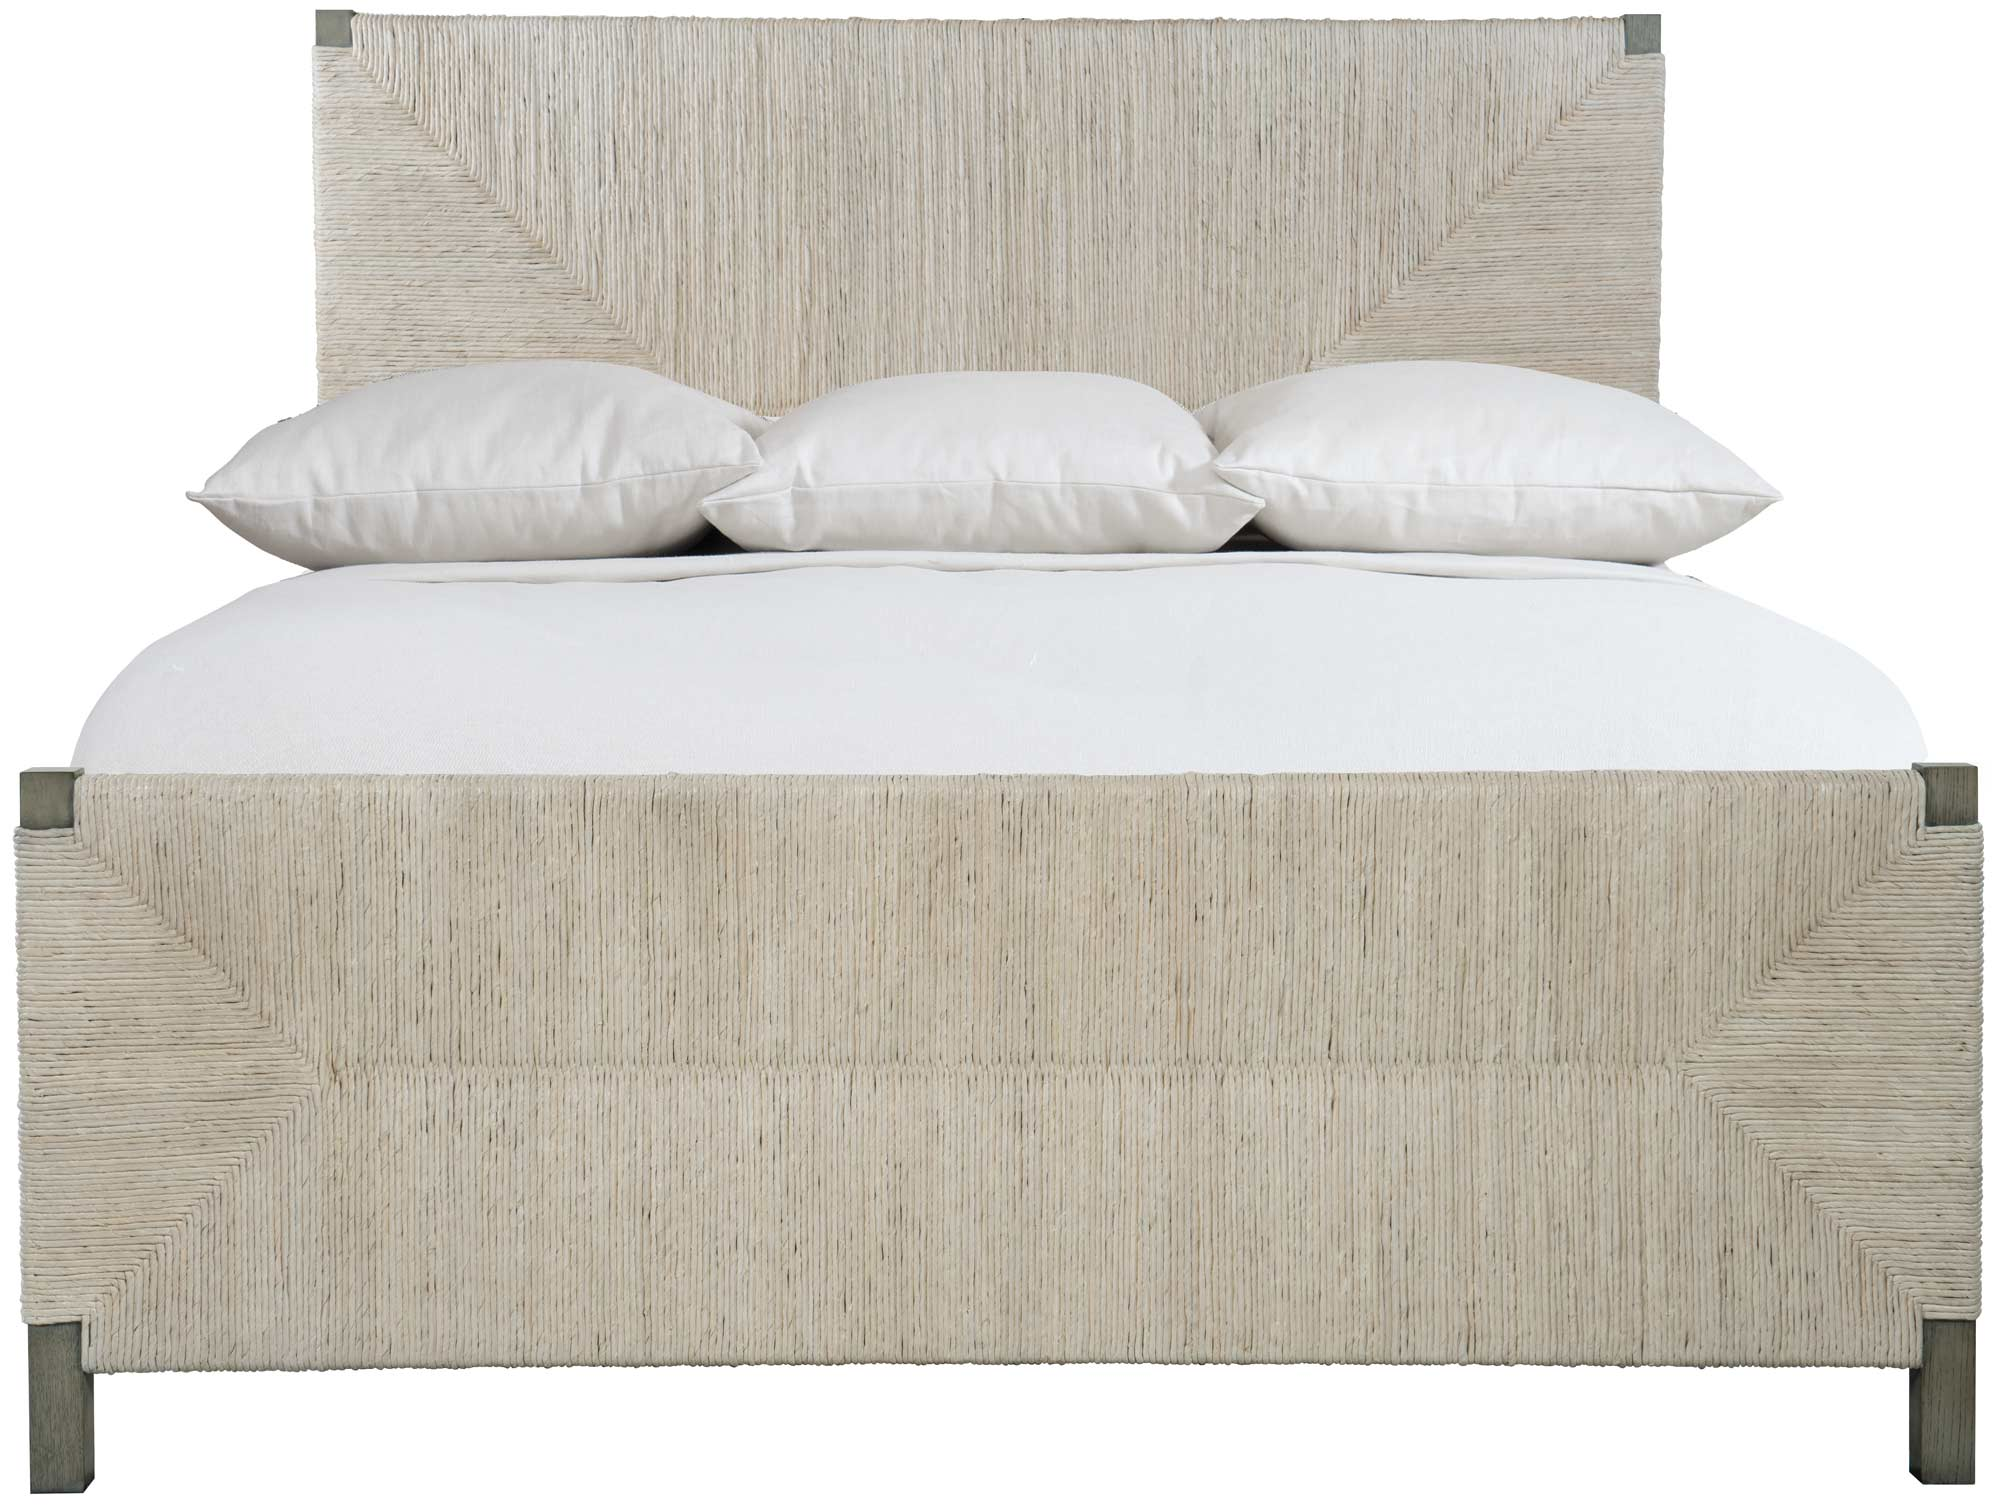 Bernhardt Interiors Alannis Woven King Panel Bed in Light Gray Wash